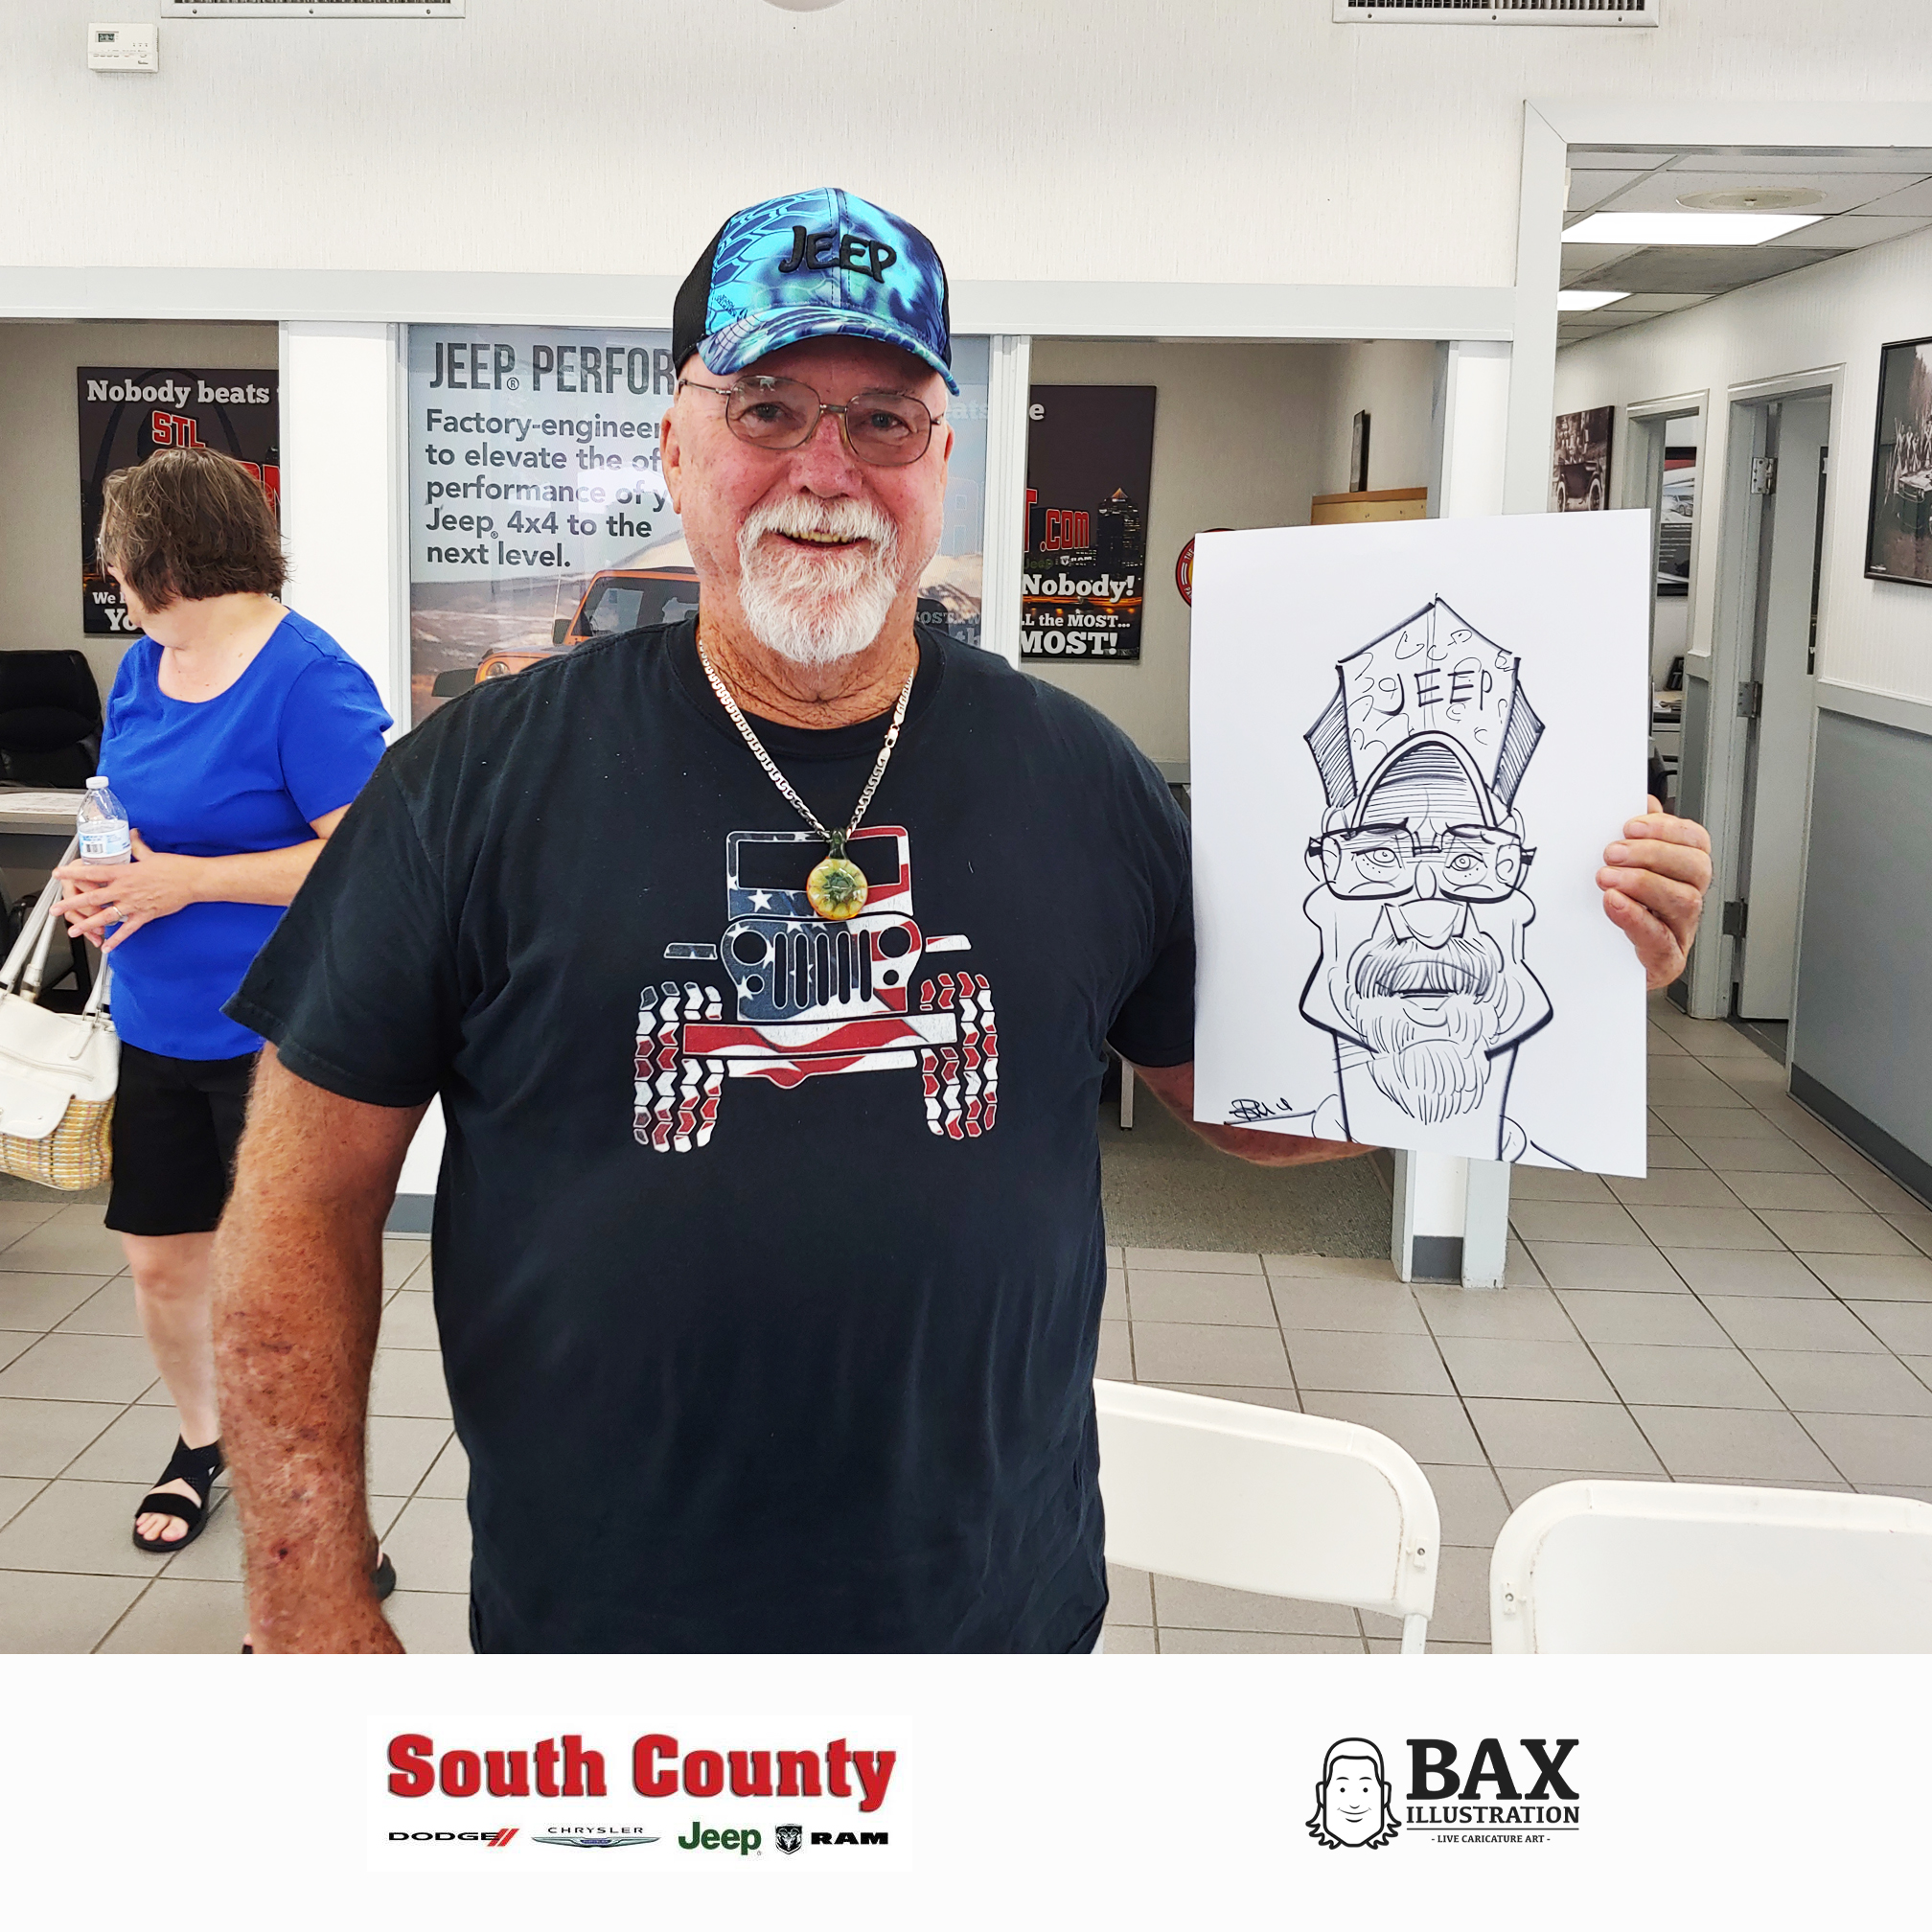 Guy with Jeep hat holding caricature by Bax Illustration at South County Dodge Customer Appreciation Event in St. Louis